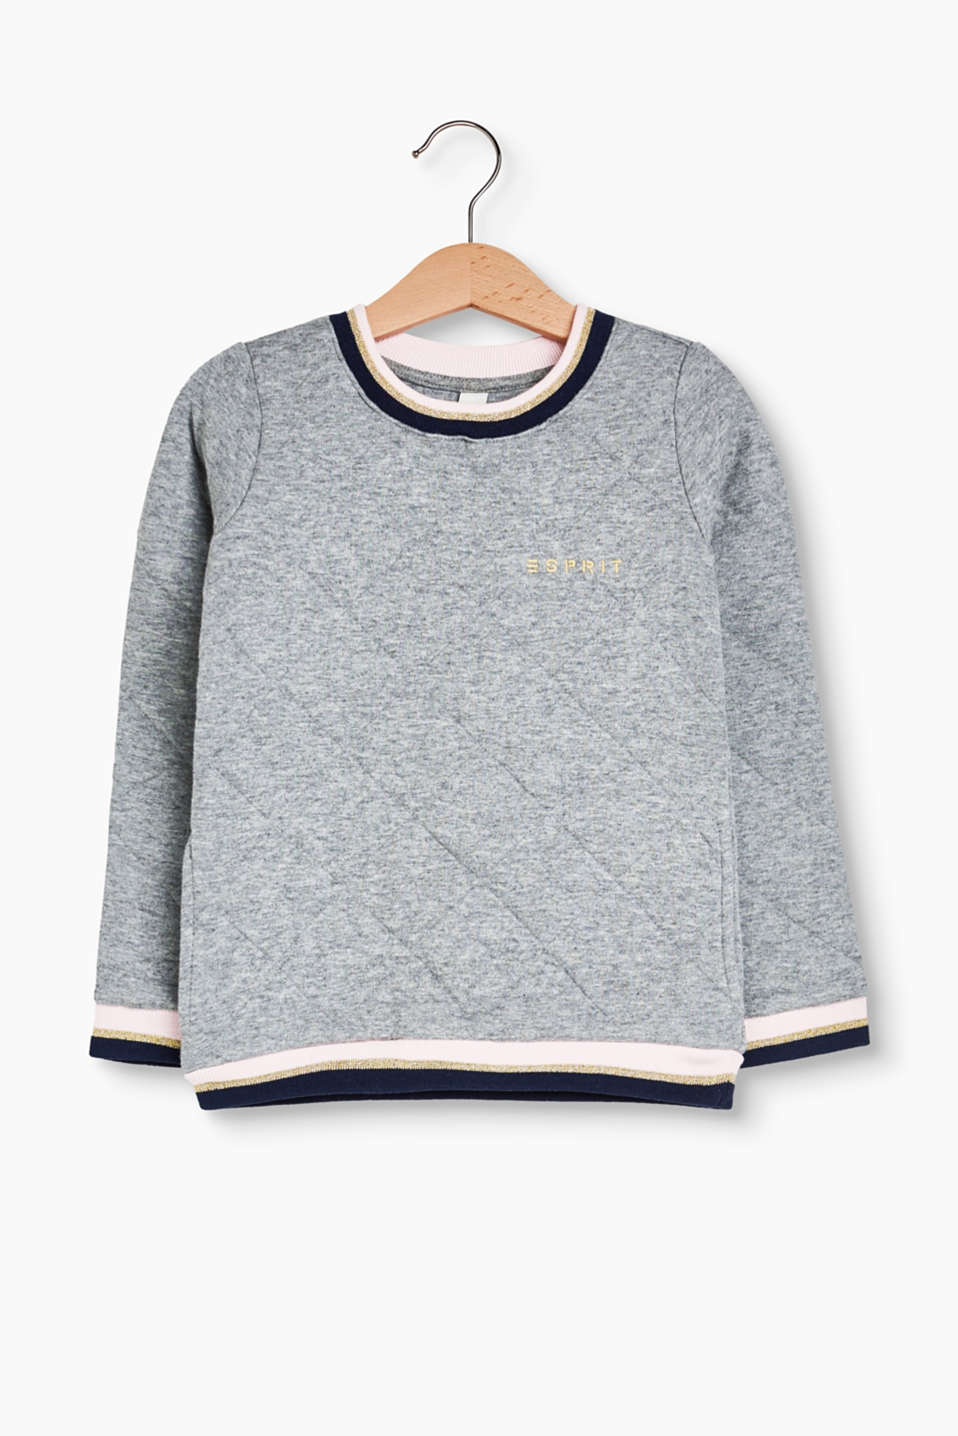 Soft, cotton blend sweatshirt + metallic, embroidered logo, diamond topstitching, slit pockets and ribbed borders